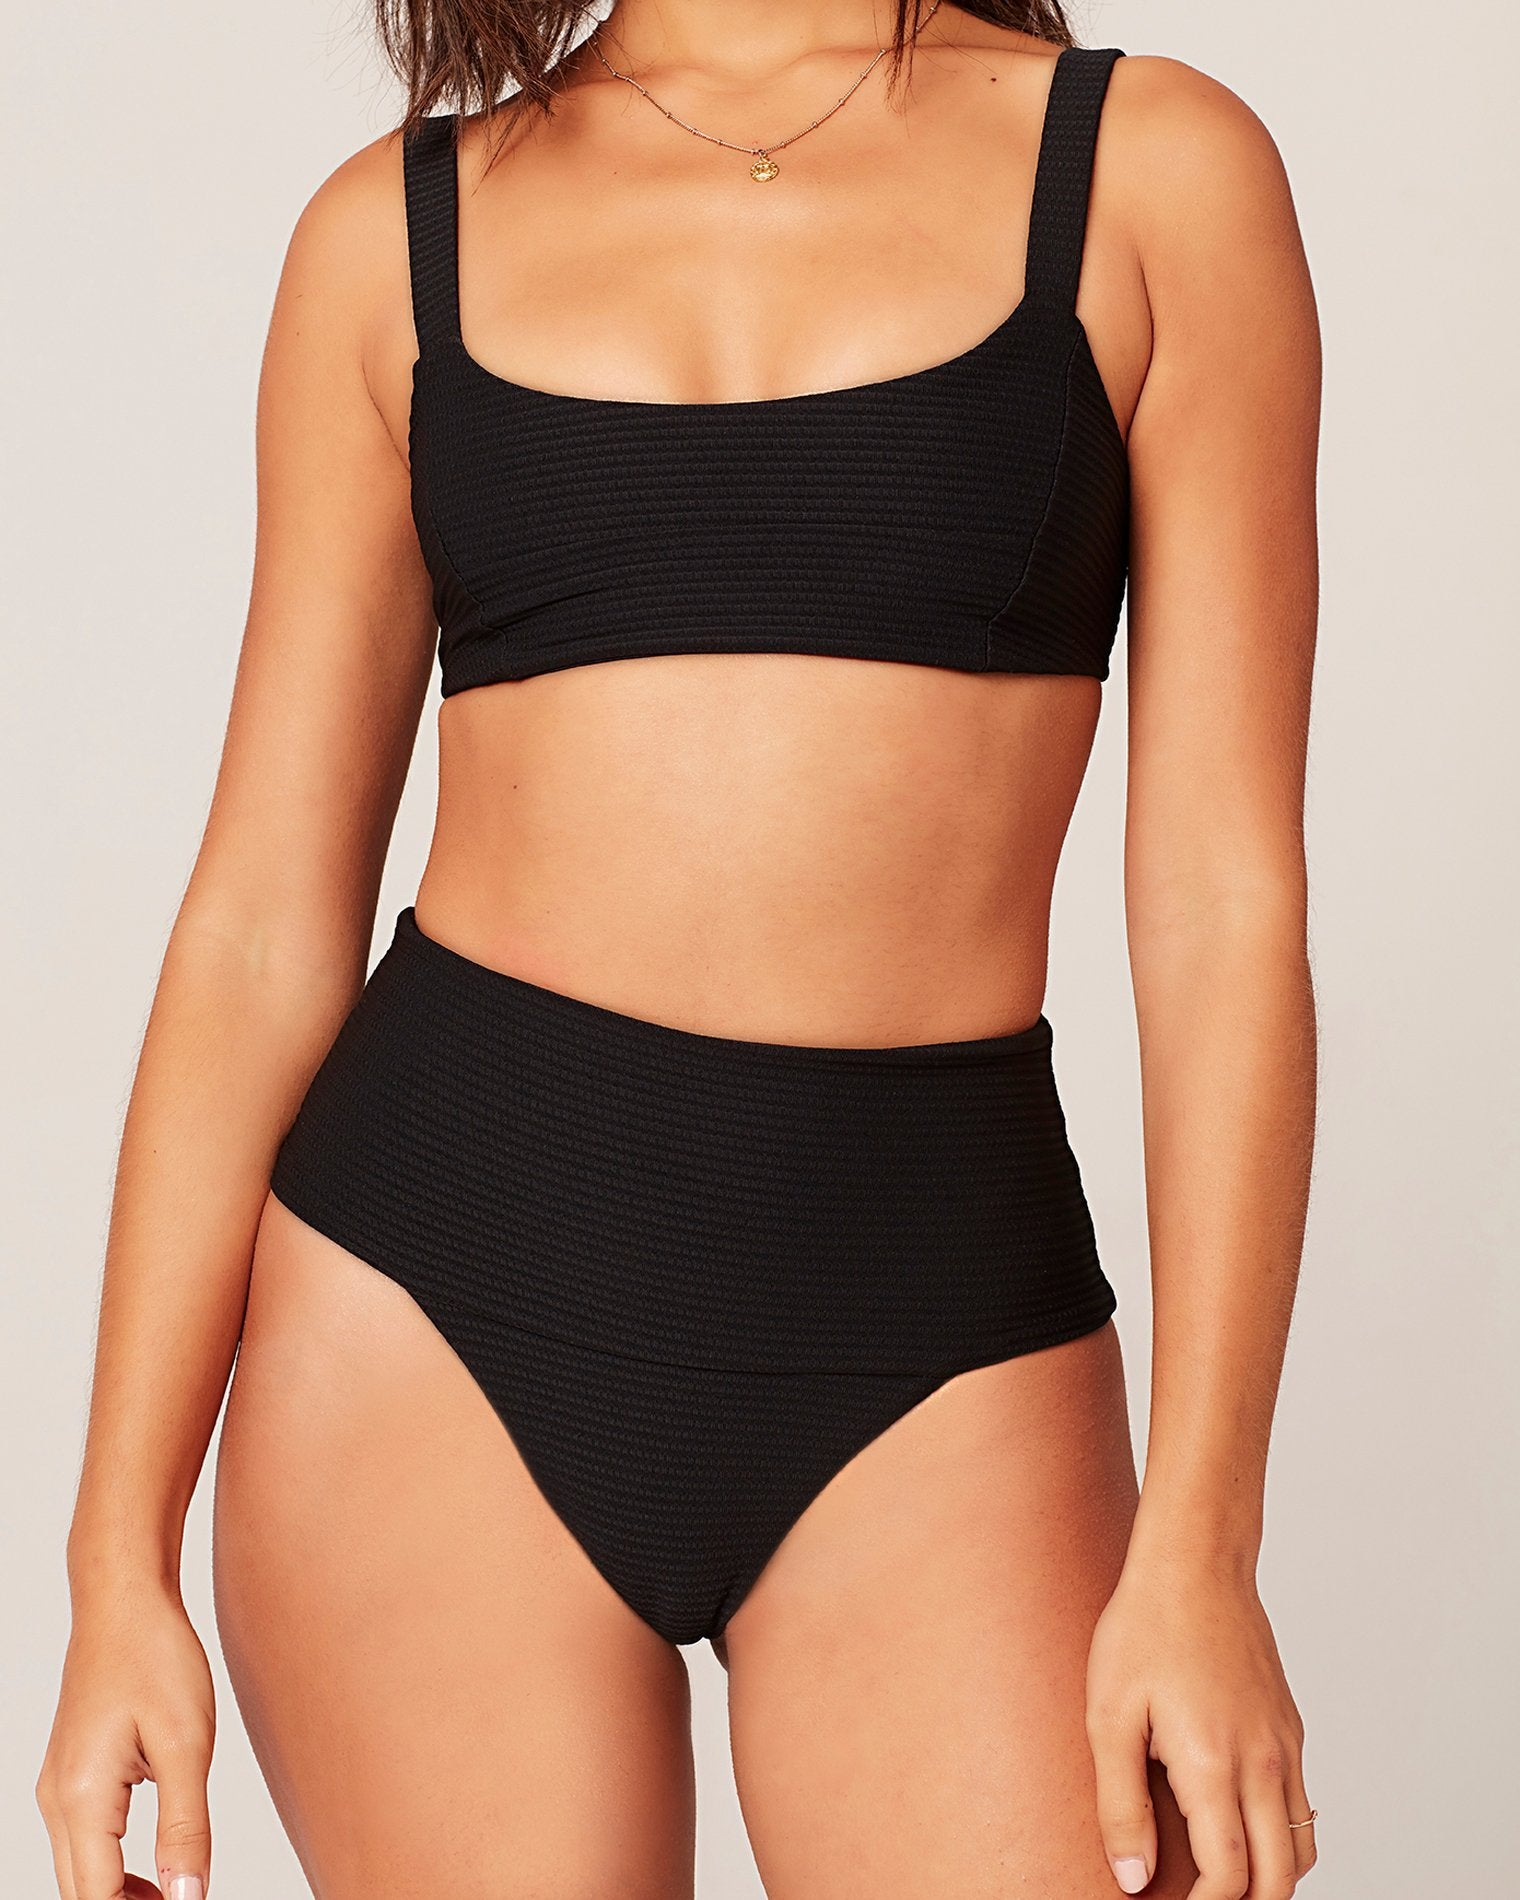 L*Space Eco Chic Repreve® Jess Top in Black